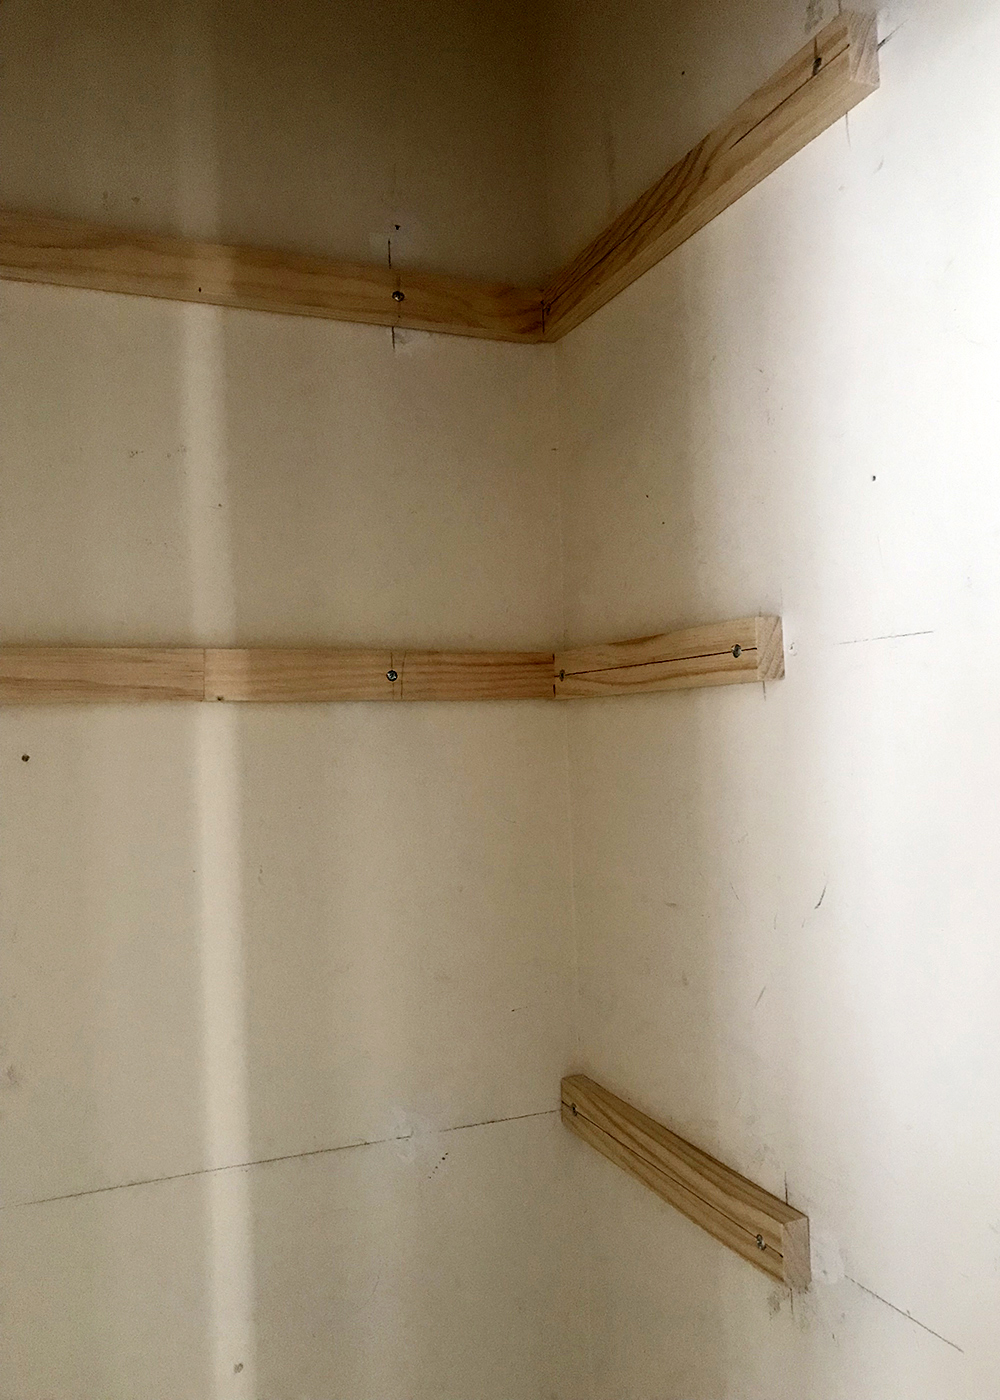 wood braces in place before painting